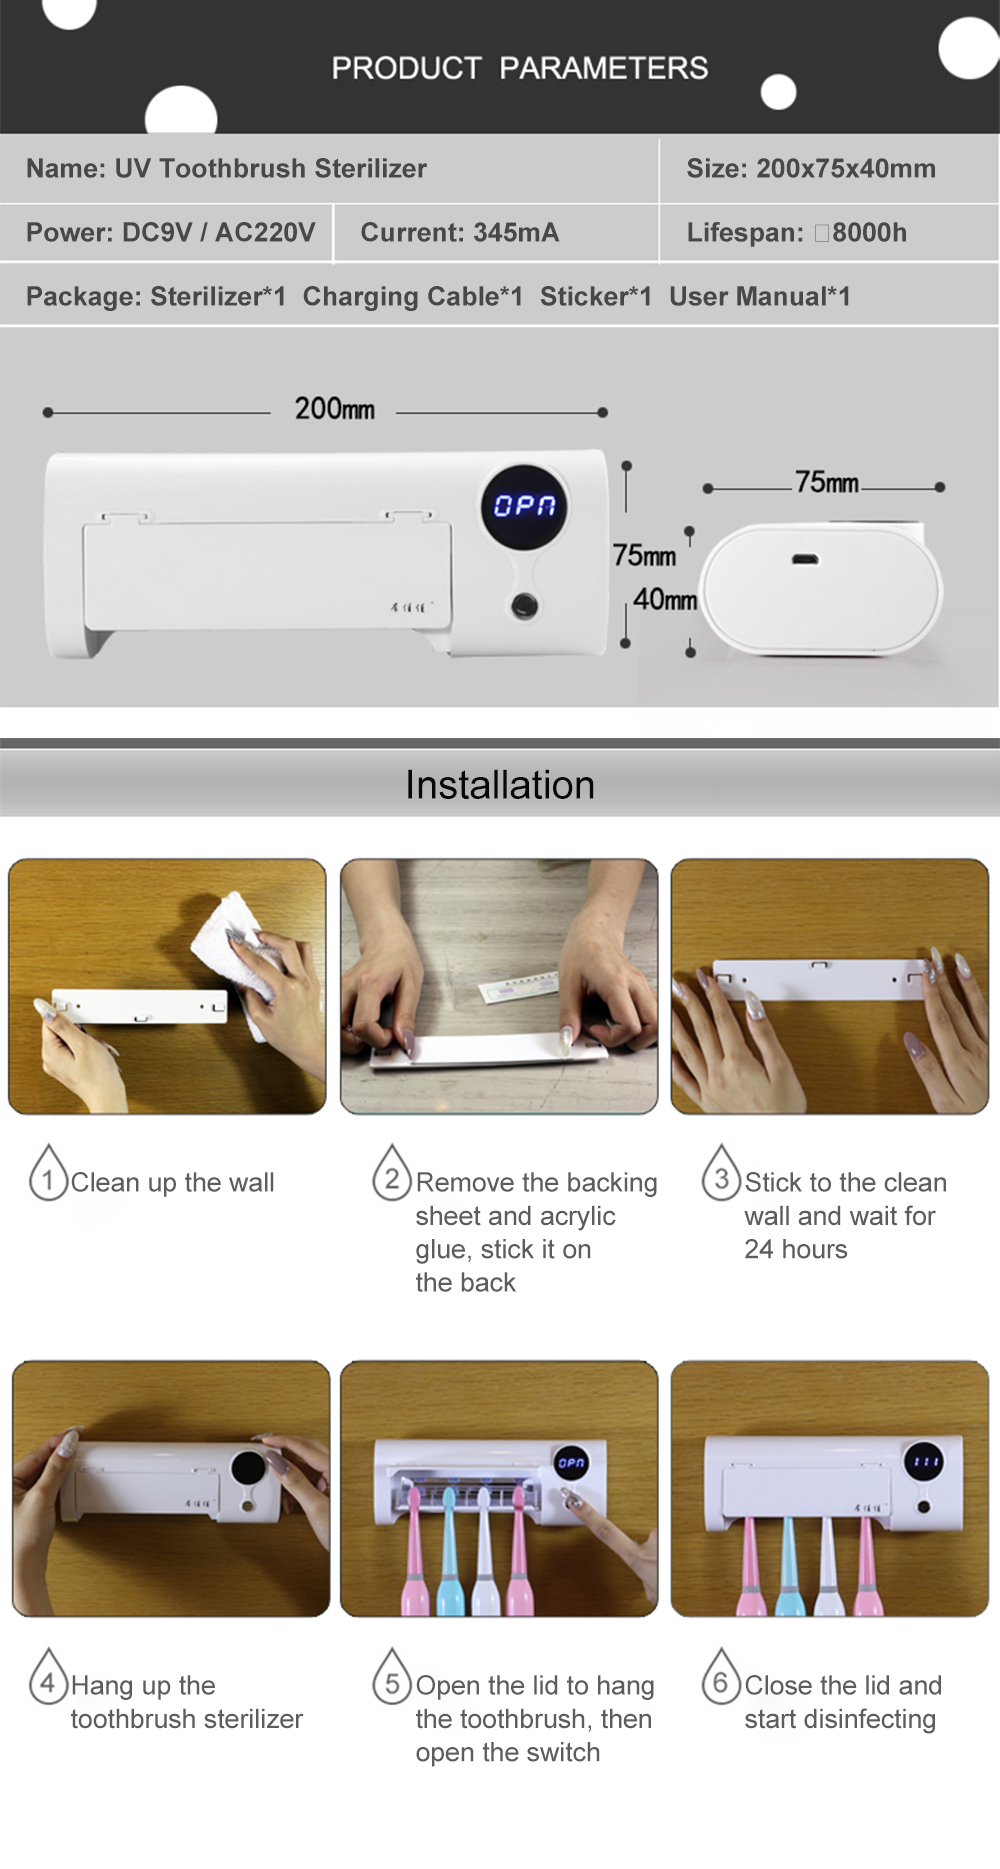 JUJIAJIA Smart Induction UV Electric Toothbrush Sterilizer Toothbrush Holder Sterilization Disinfector for Soocas Oclean Dr. Bei Electric Toothbrushes from Xiaomi Youpin